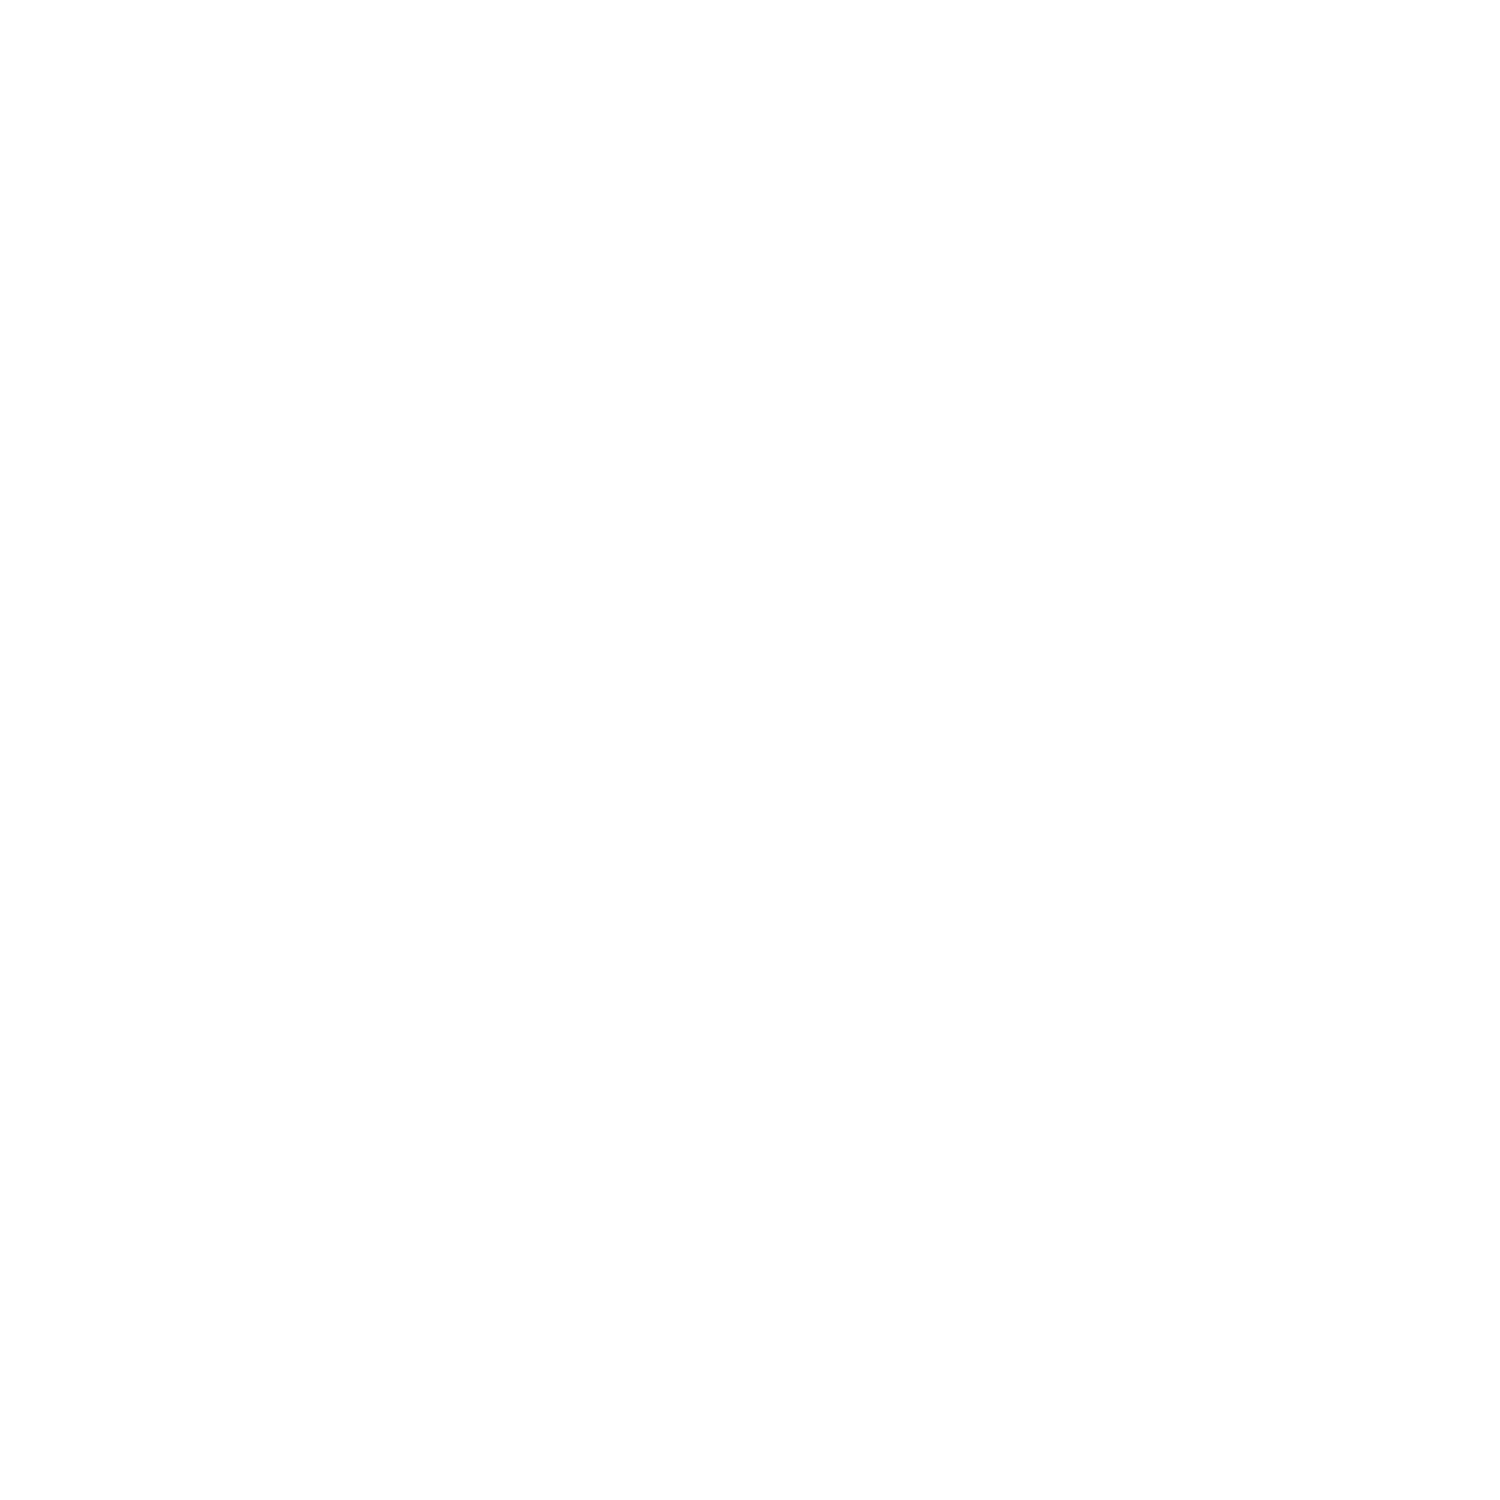 Information about Leisure Cycling.